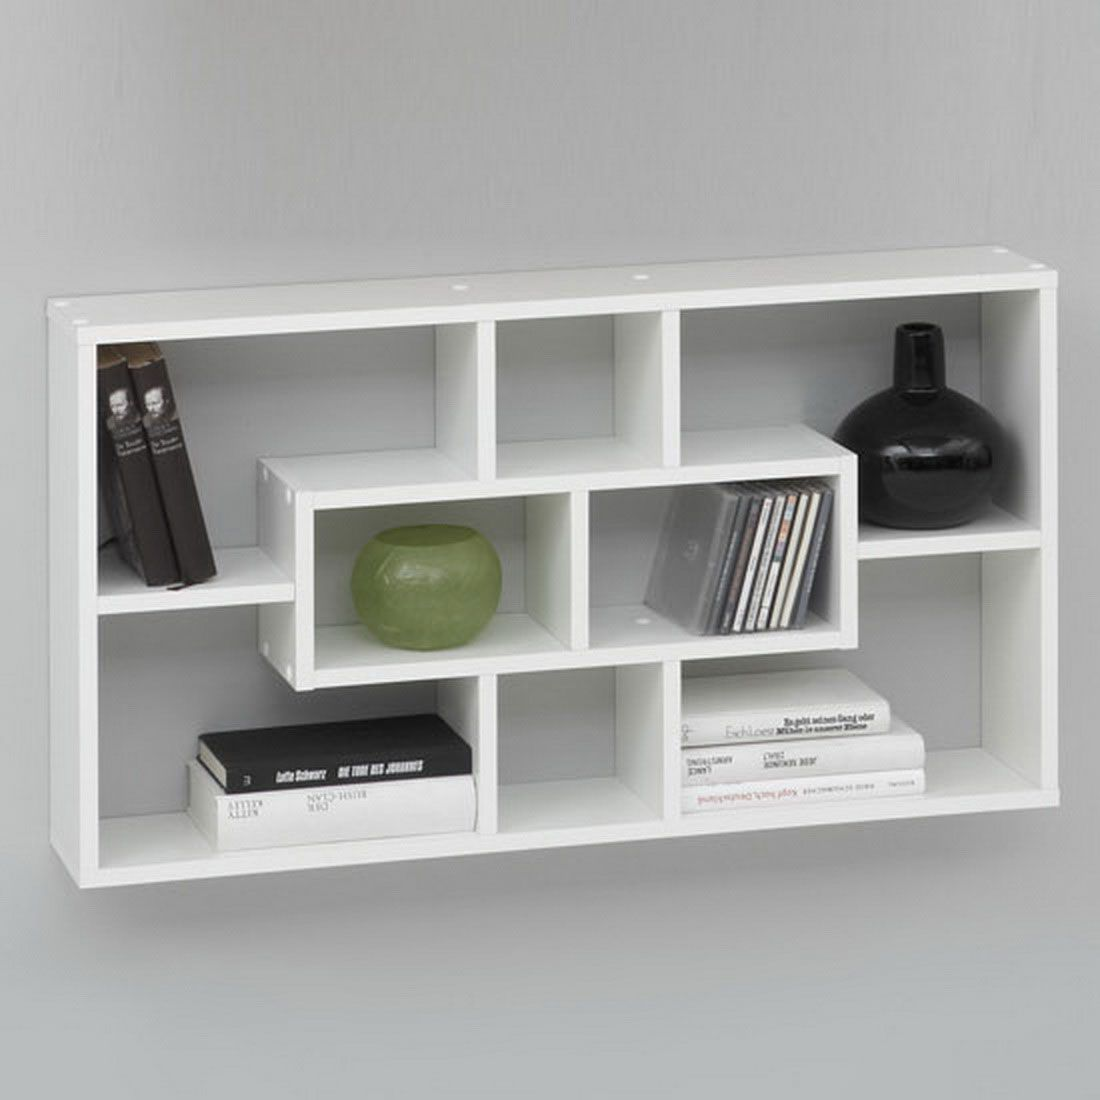 mounted system hanging bookcase display wall unit corner shelf billy low long ikea bookshelf lovely tv shelving